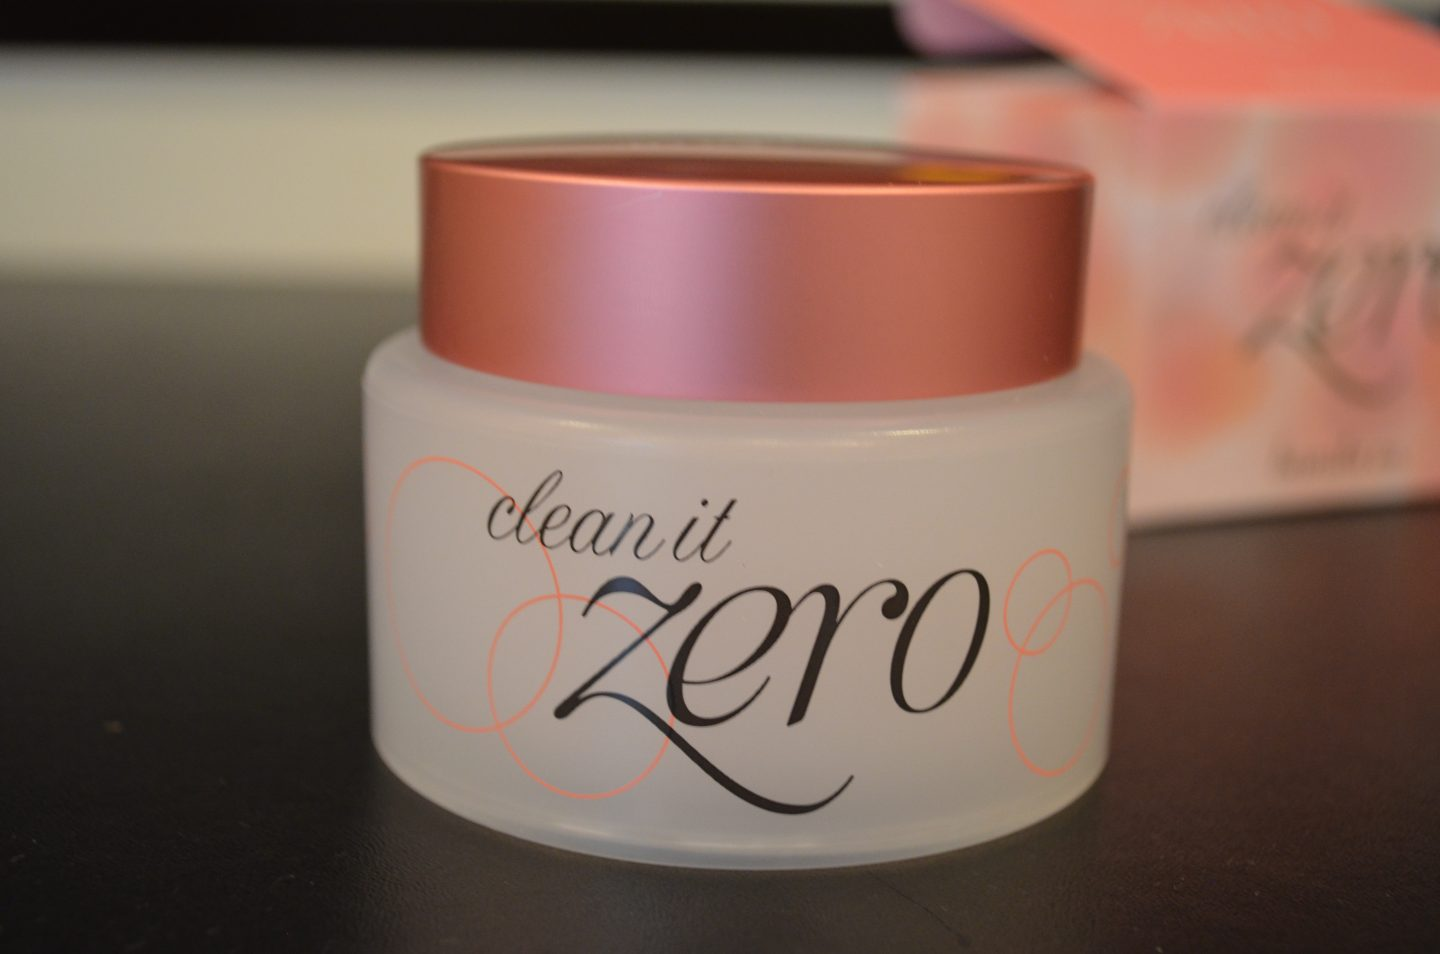 REVIEW: Banila Co. Clean It Zero Cleansing Balm